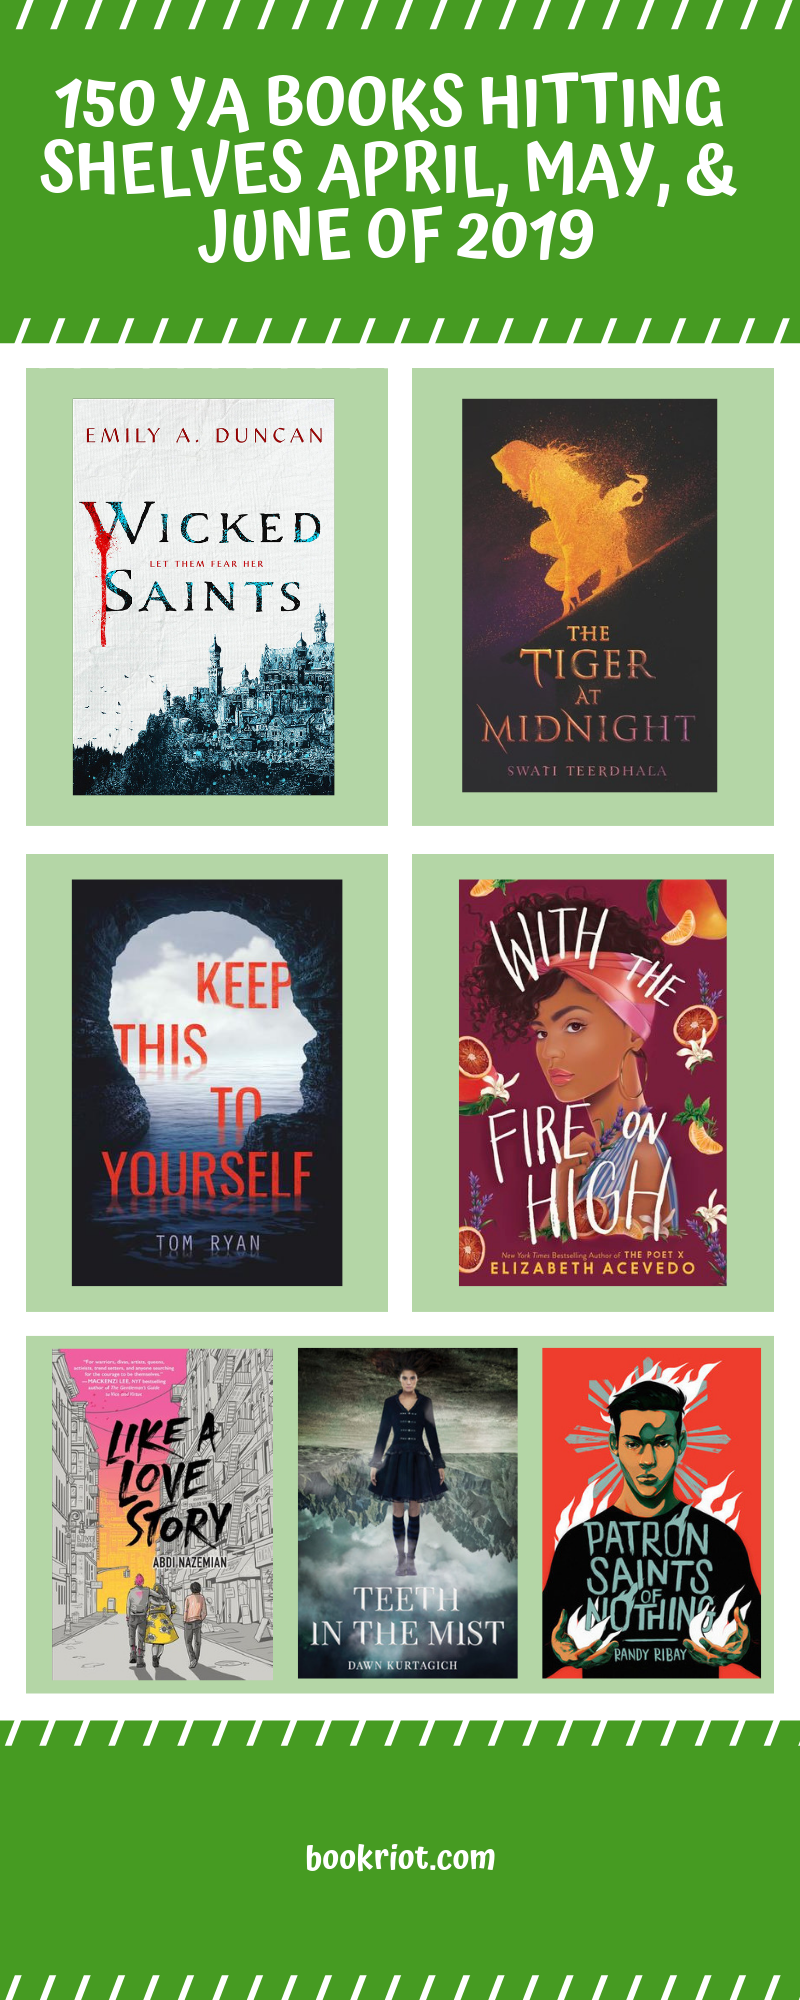 Spring 2019 YA Book Preview: So! Many! YA! Books!